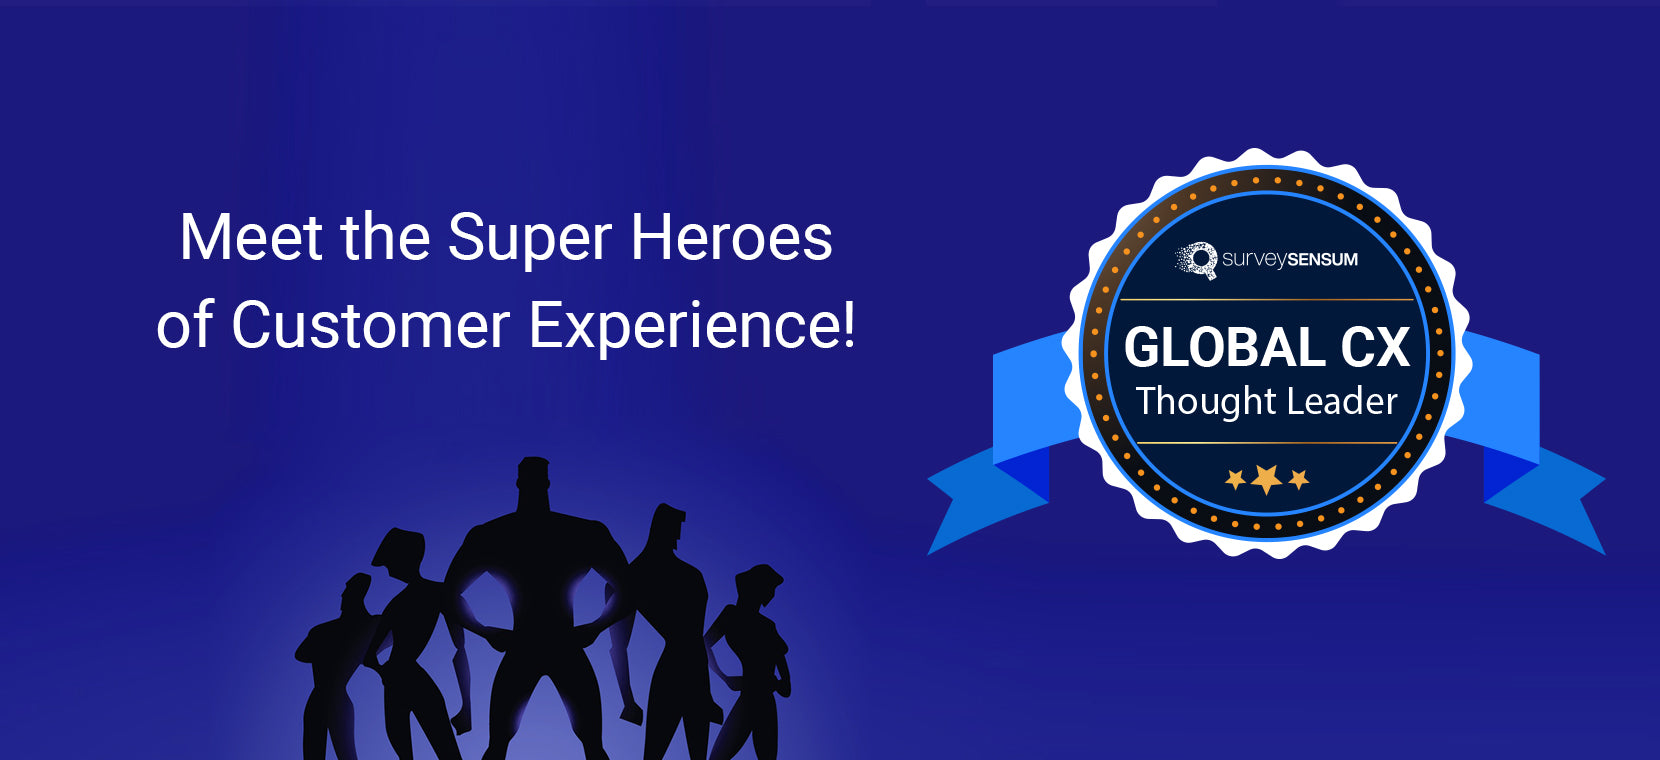 Meet the Super Heroes of Customer Experience